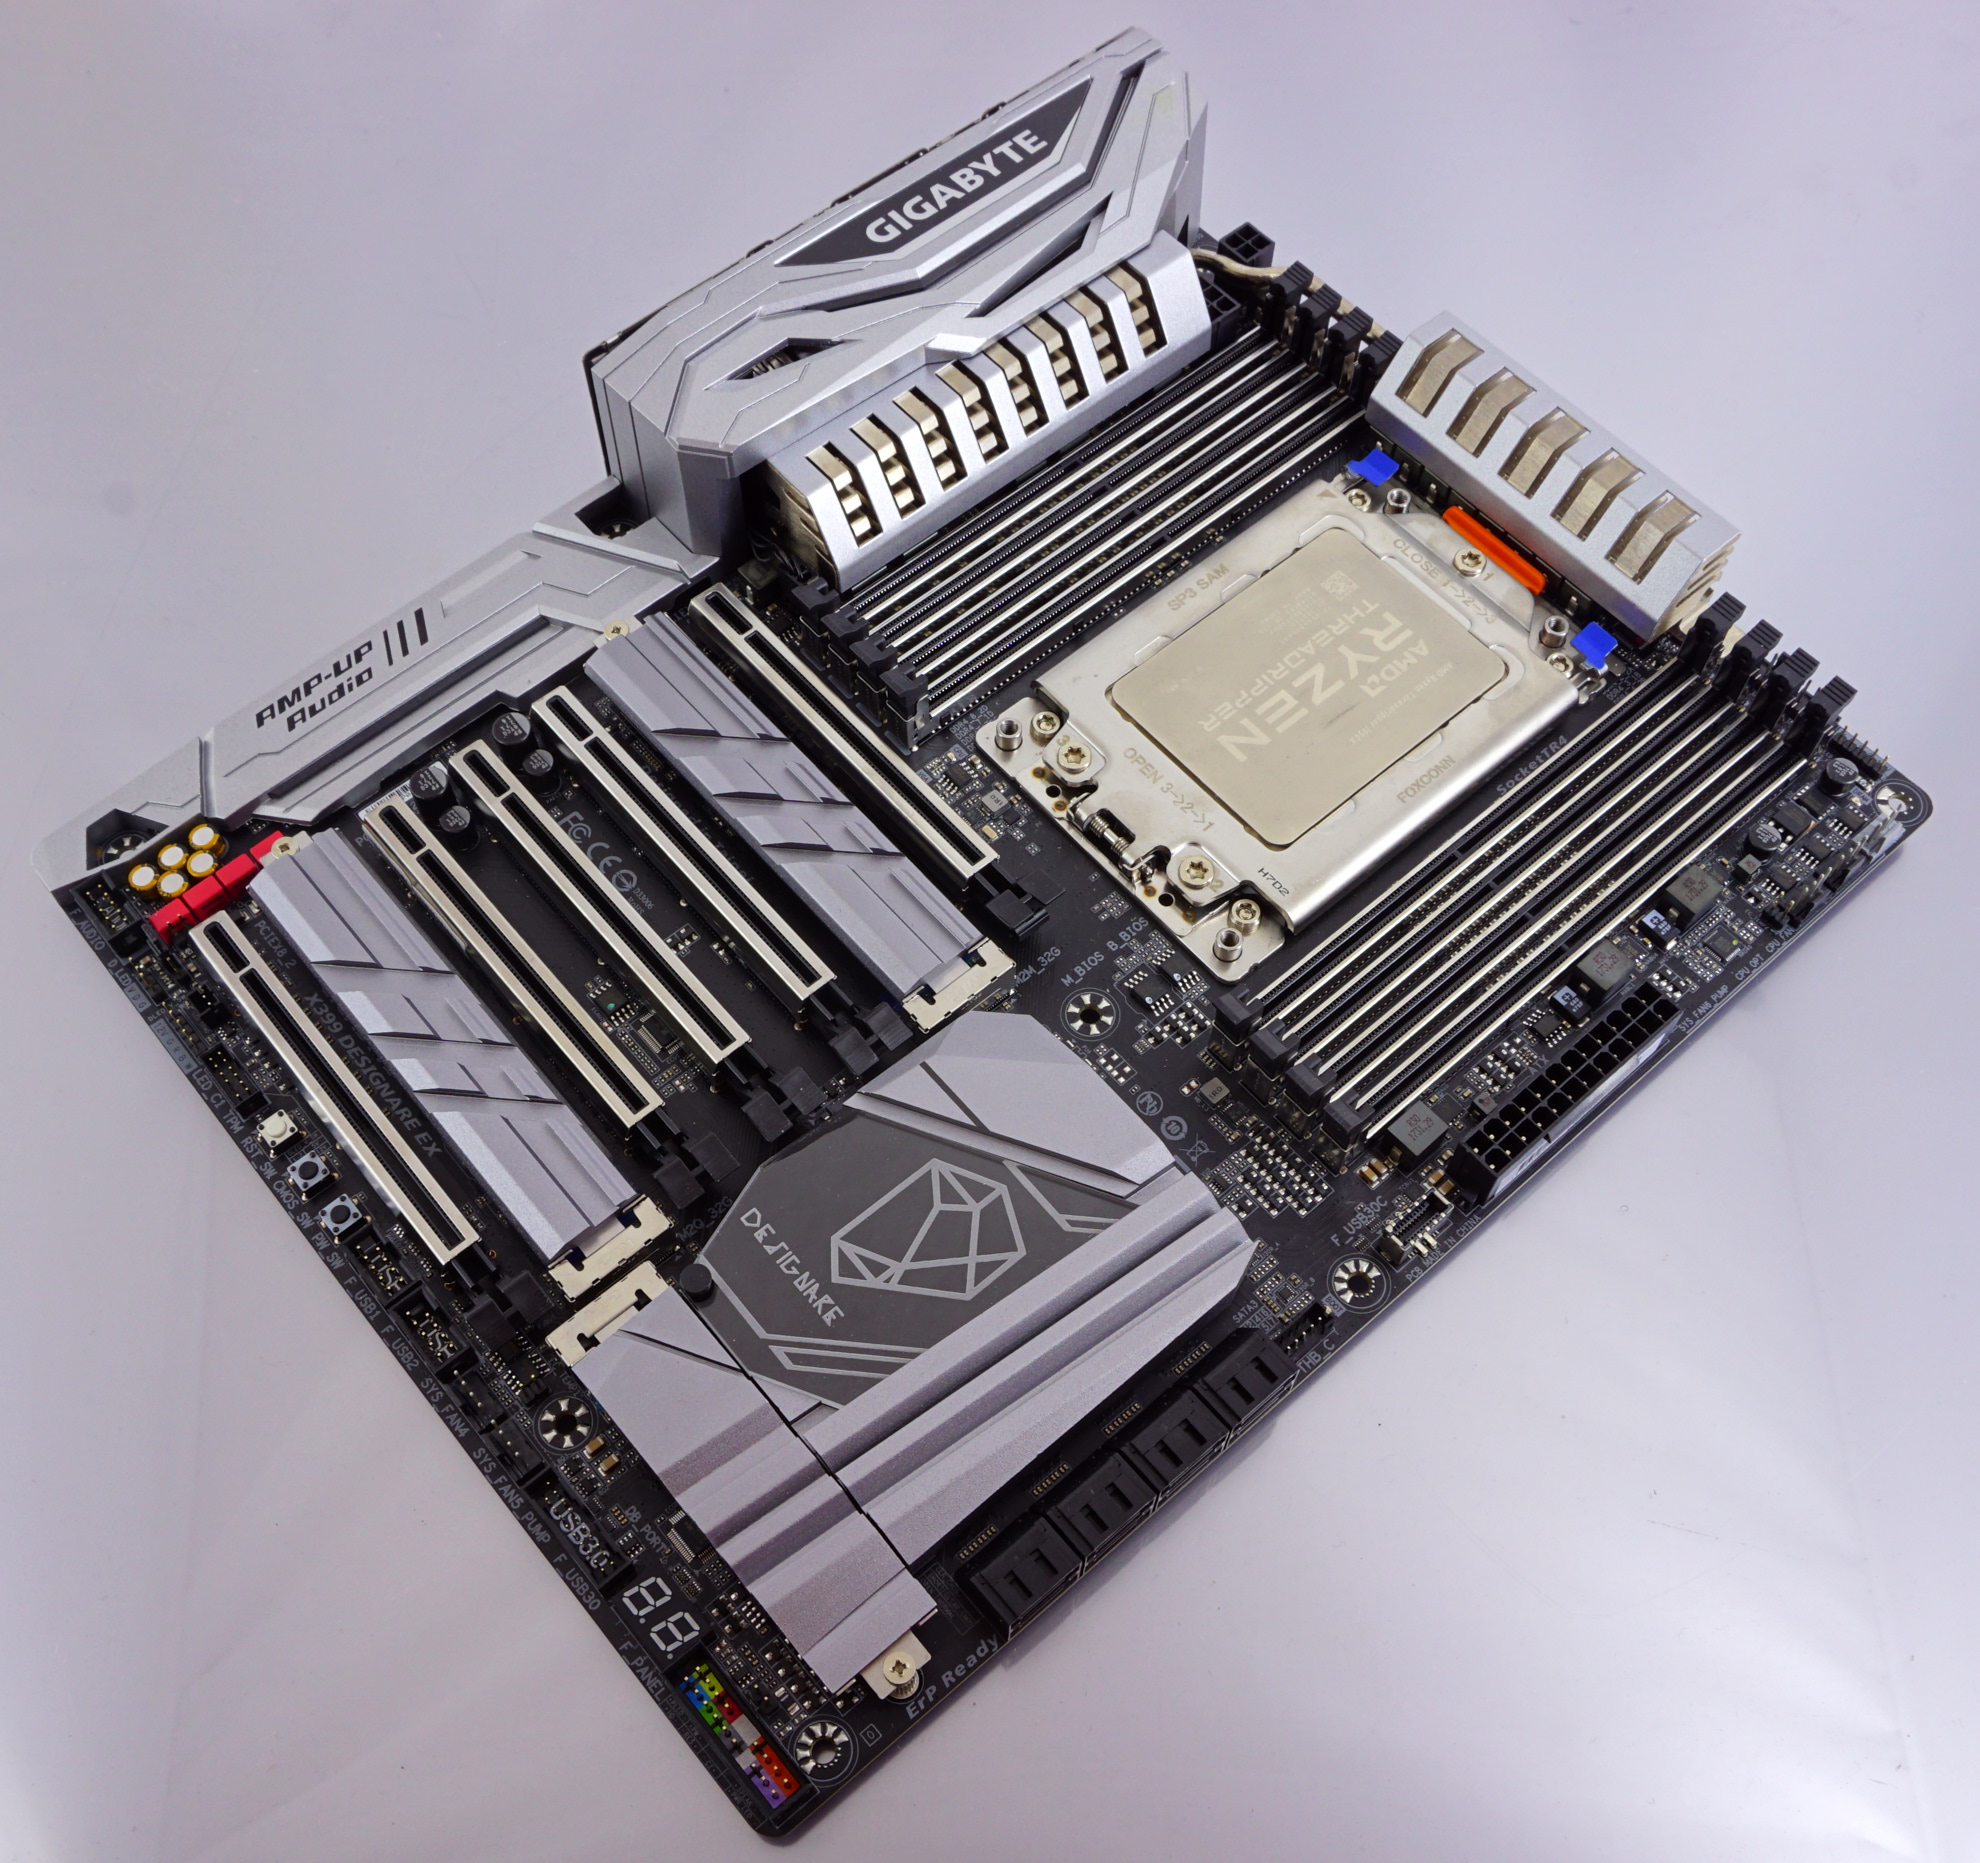 Visual Inspection - The GIGABYTE X399 DESIGNARE EX